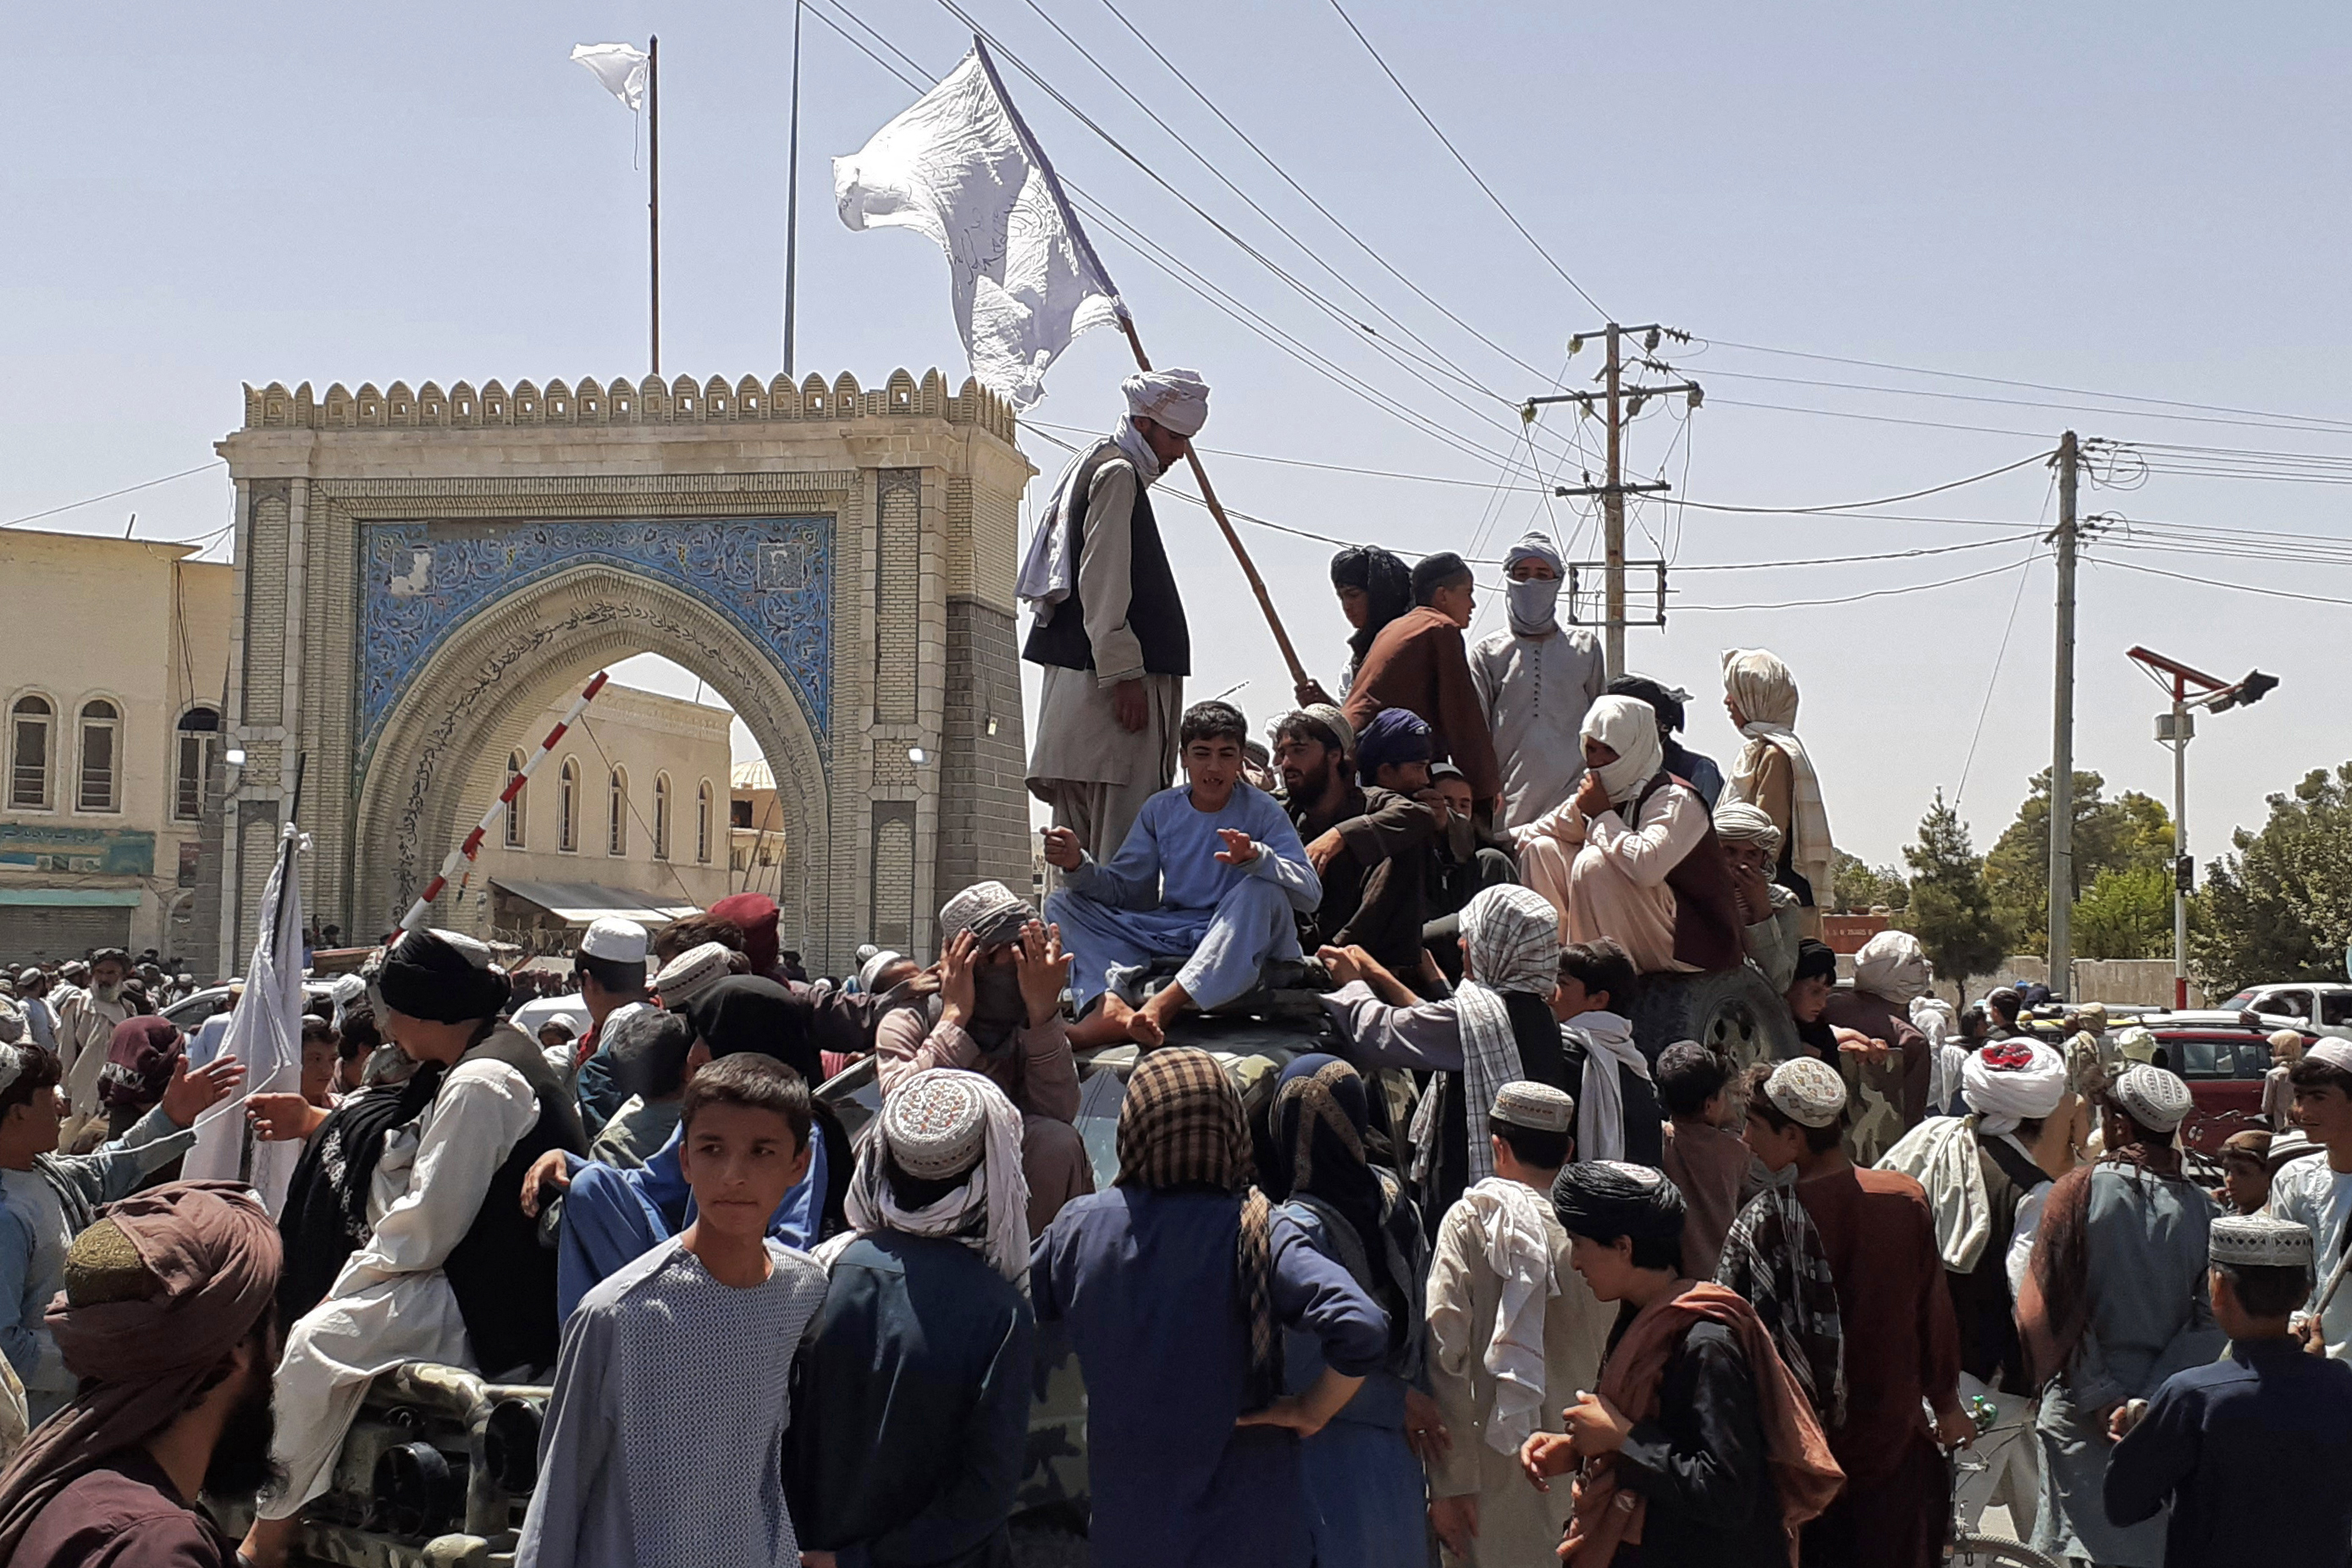 Taliban fighters stand on a vehicle in Kandahar on Friday, August 13.